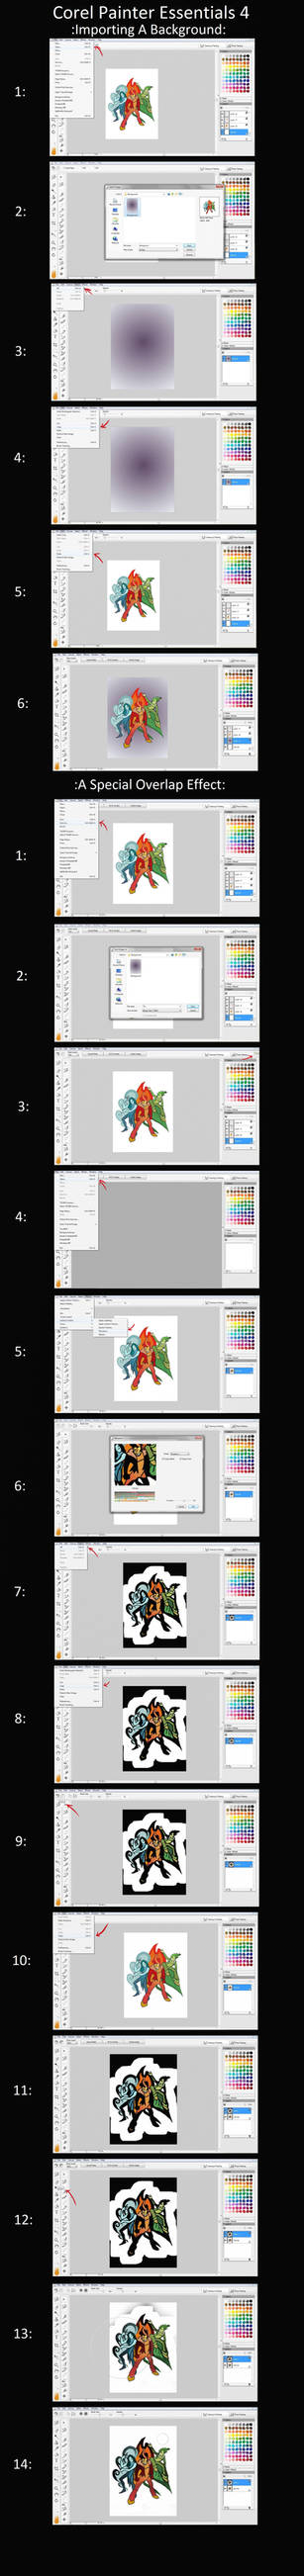 Corel Painter Essentials 4: Double Tutorial